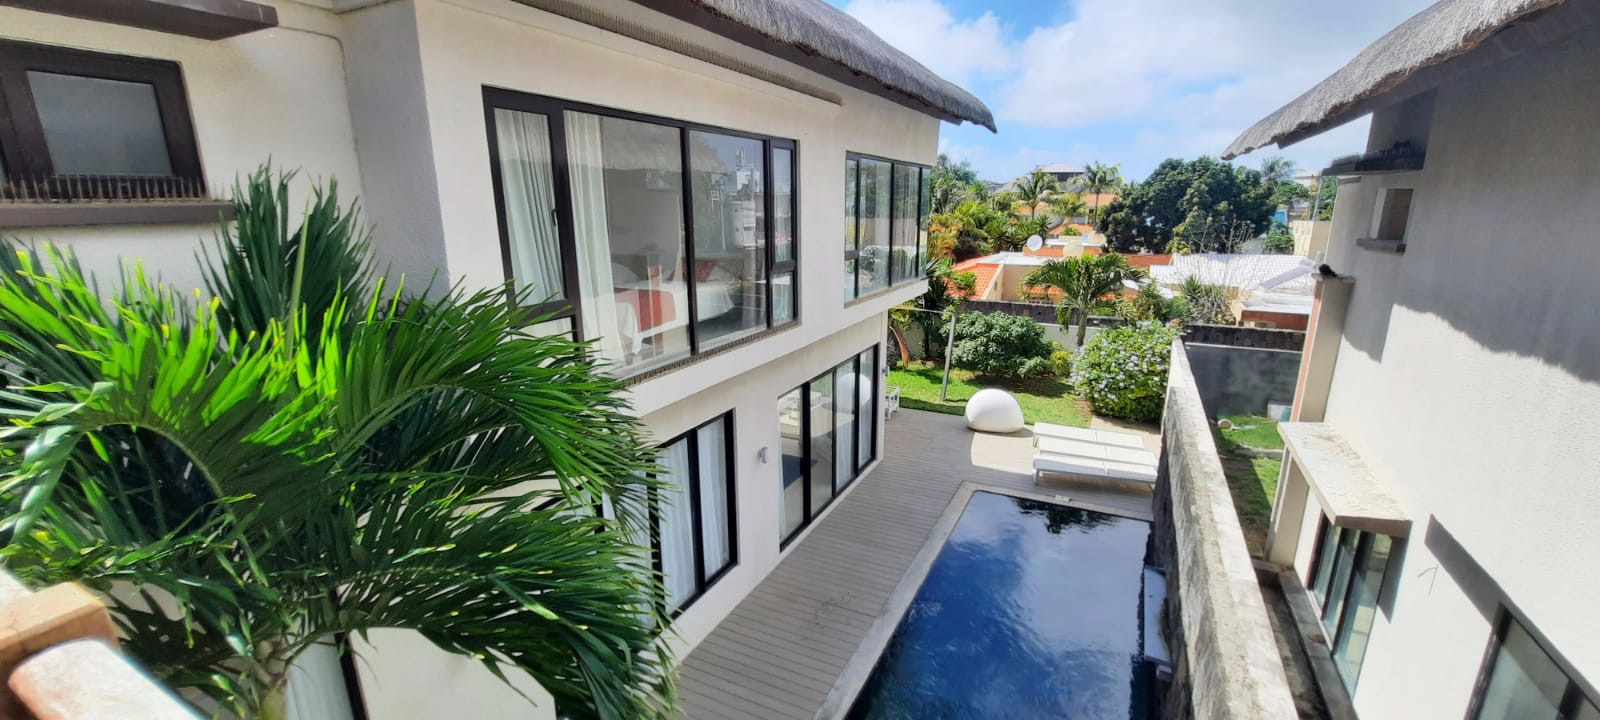 4 Bedroom House For Sale in Bain Boeuf